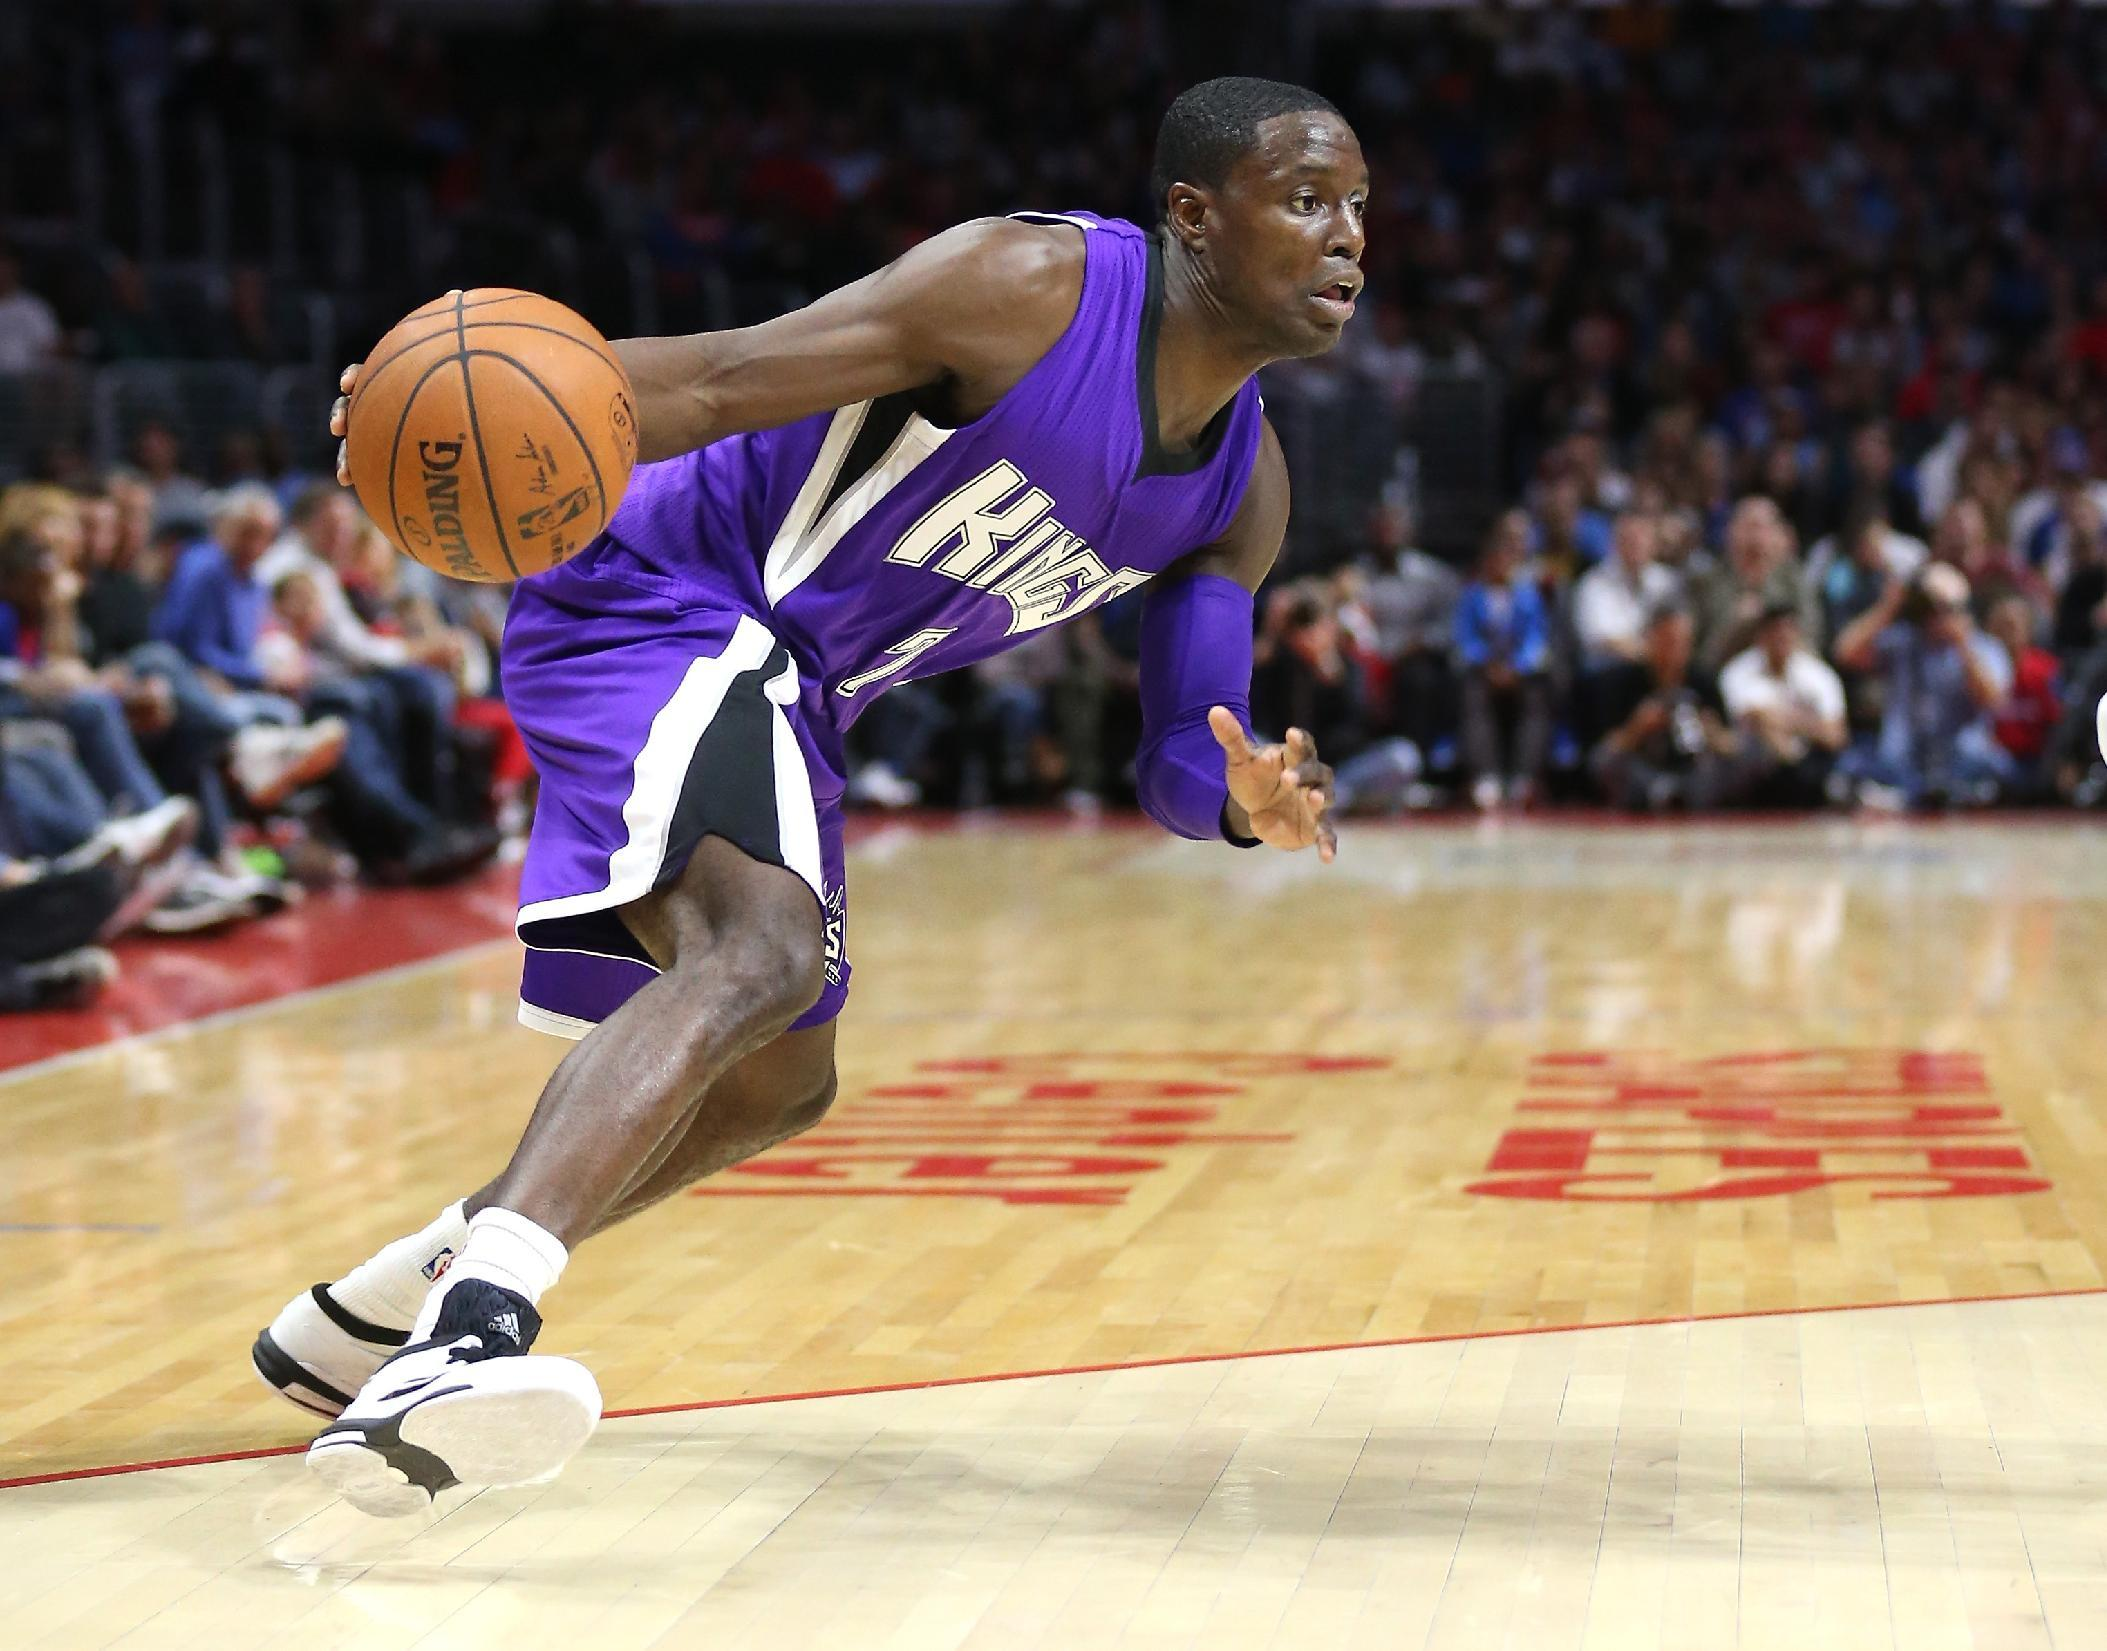 Kings lose Collison indefinitely due to hip surgery